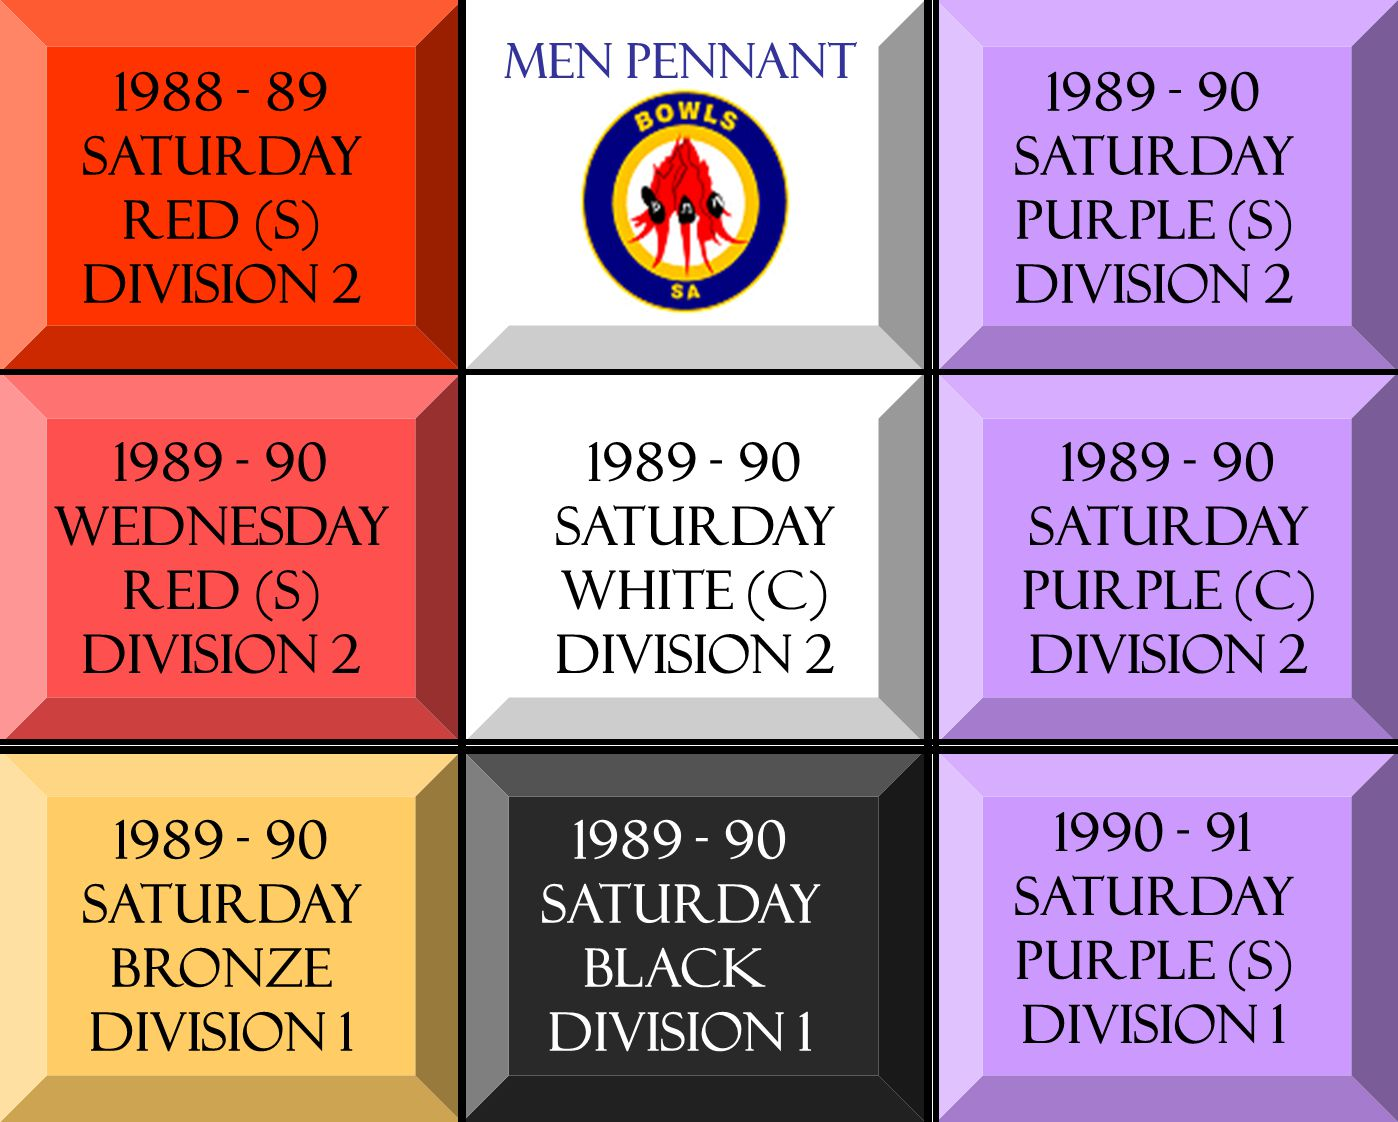 1988 - 89 SATURDAY RED (s) DIVISION 2 1989 - 90 WEDNESDAY RED (s) DIVISION 2 1989 - 90 SATURDAY BRONZE DIVISION 1 1989 - 90 SATURDAY WHITE (C) DIVISION 2 1989 - 90 SATURDAY BLACK DIVISION 1 1989 - 90 SATURDAY PURPLE (s) DIVISION 2 1989 - 90 SATURDAY PURPLE (C) DIVISION 2 1990 - 91 SATURDAY PURPLE (s) DIVISION 1 Men pennant